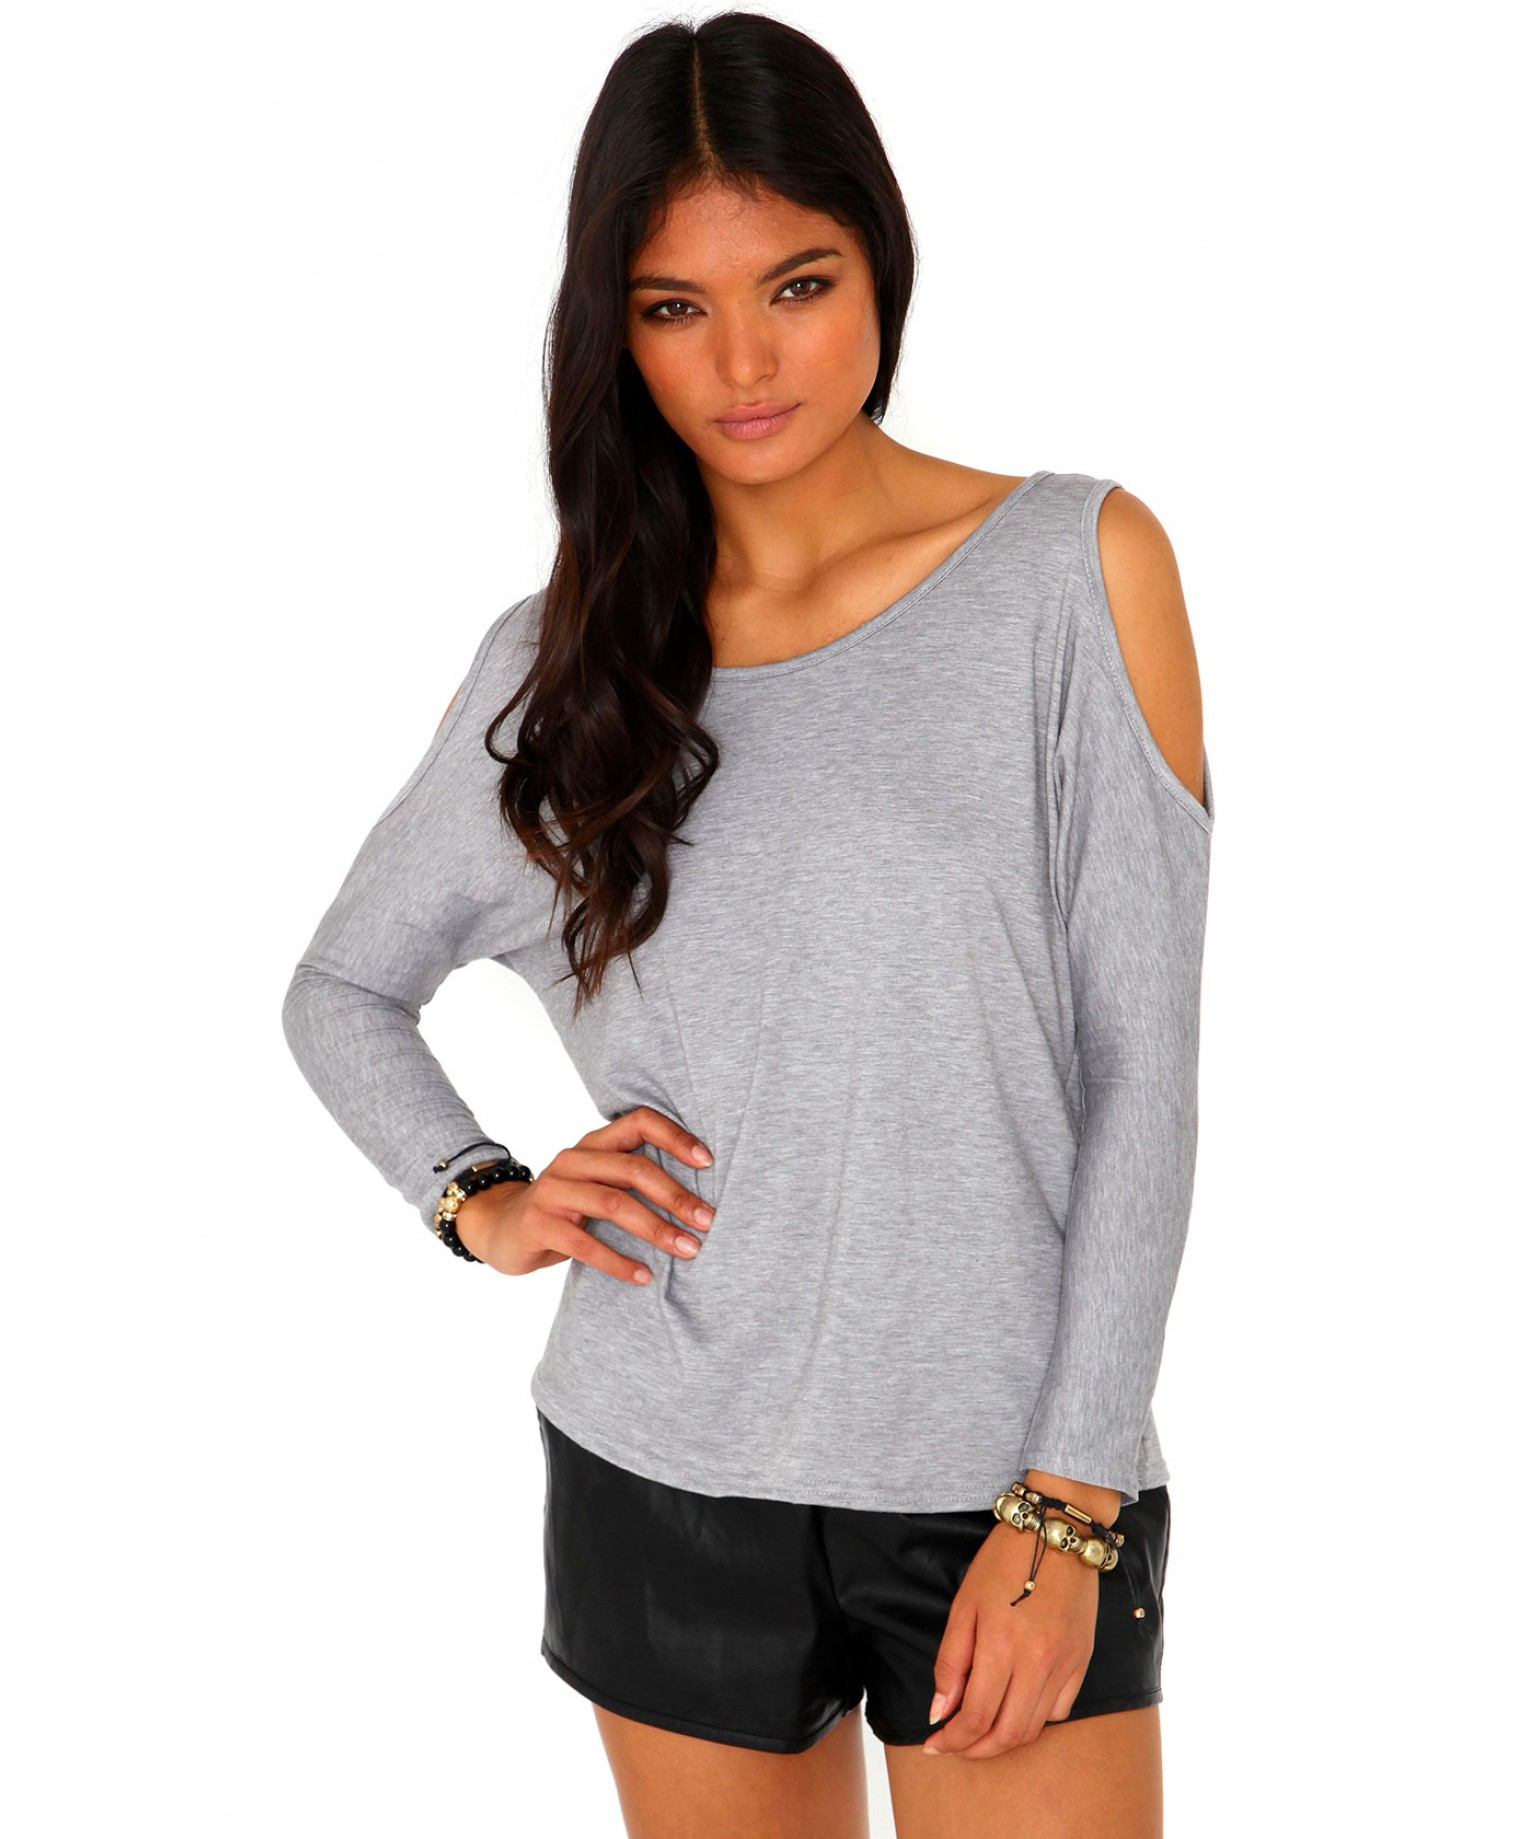 77edf6b3fa13d5 Lyst - Missguided Laile Cut Out Shoulder Top in Grey in Gray